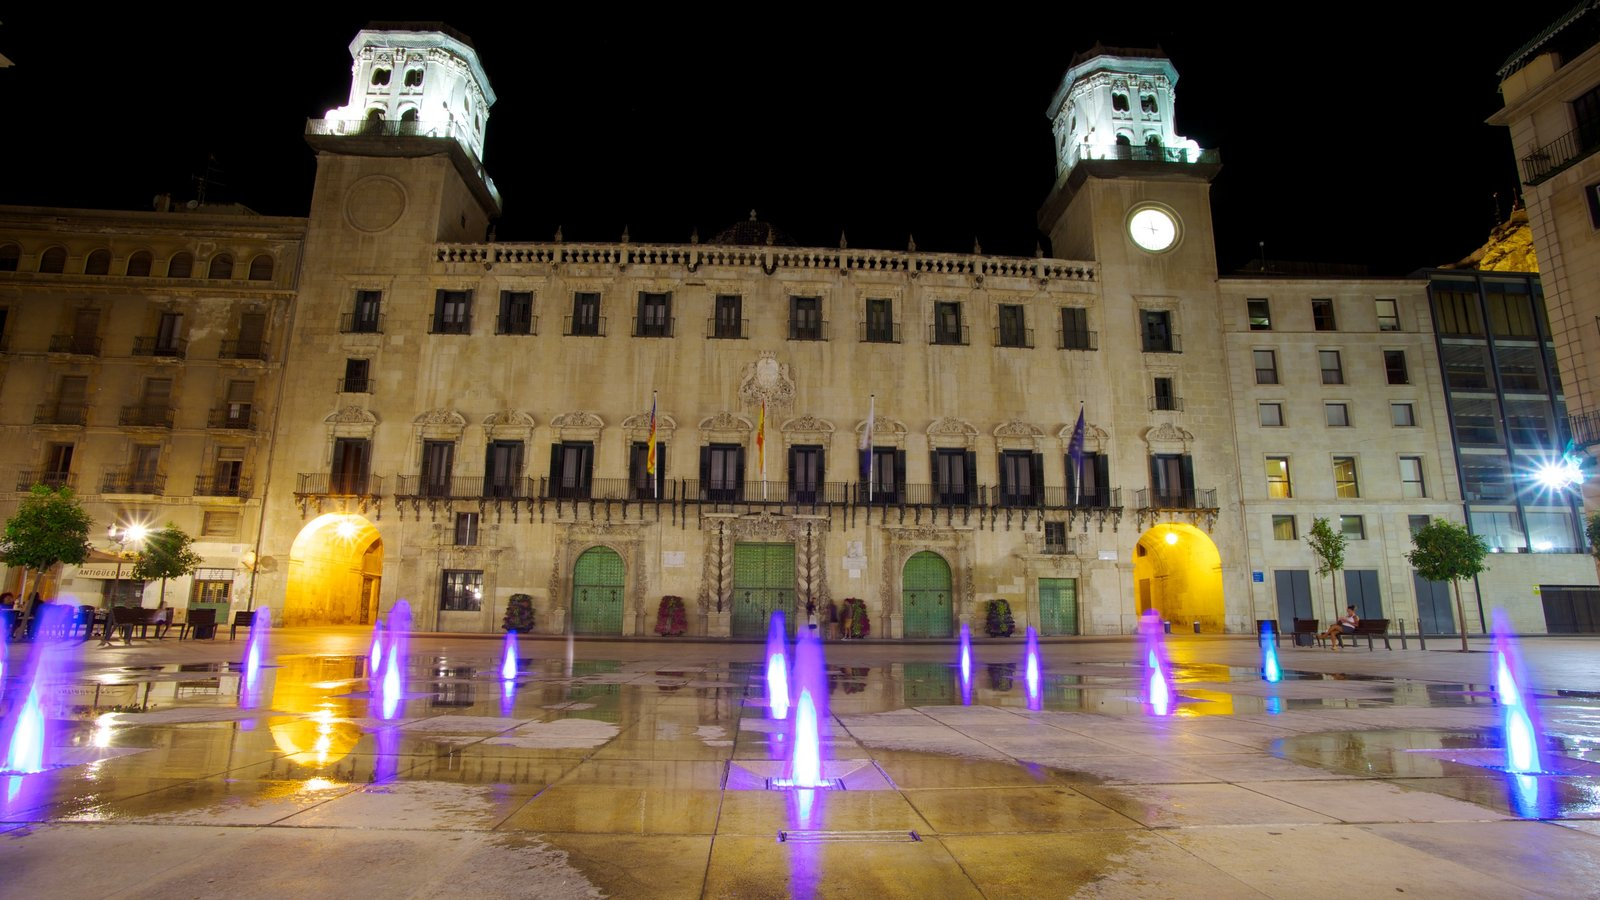 Gardens & Parks Pictures: View Images of Alicante Town Hall